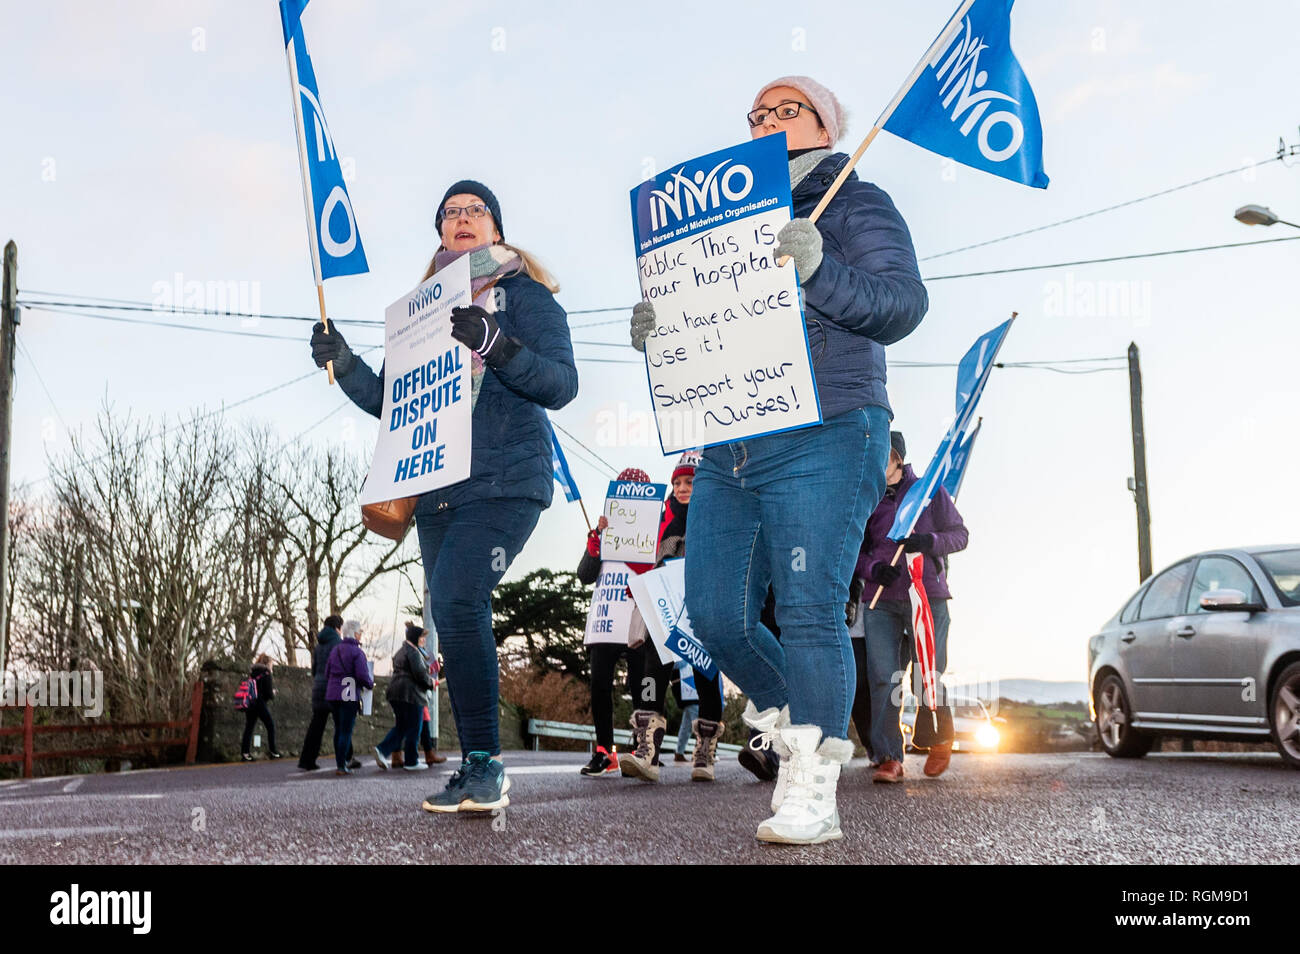 Bantry, West Cork, Ireland. 30th Jan, 2019. More than 35,000 nurses around Ireland began a 24 hour strike at 8am this morning. They're striking over pay parity, staff recruitment and retention and are demanding a 12% pay rise. Around 20 nurses mounted a picket line at Bantry General Hospital this morning. Credit: Andy Gibson/Alamy Live News. - Stock Image